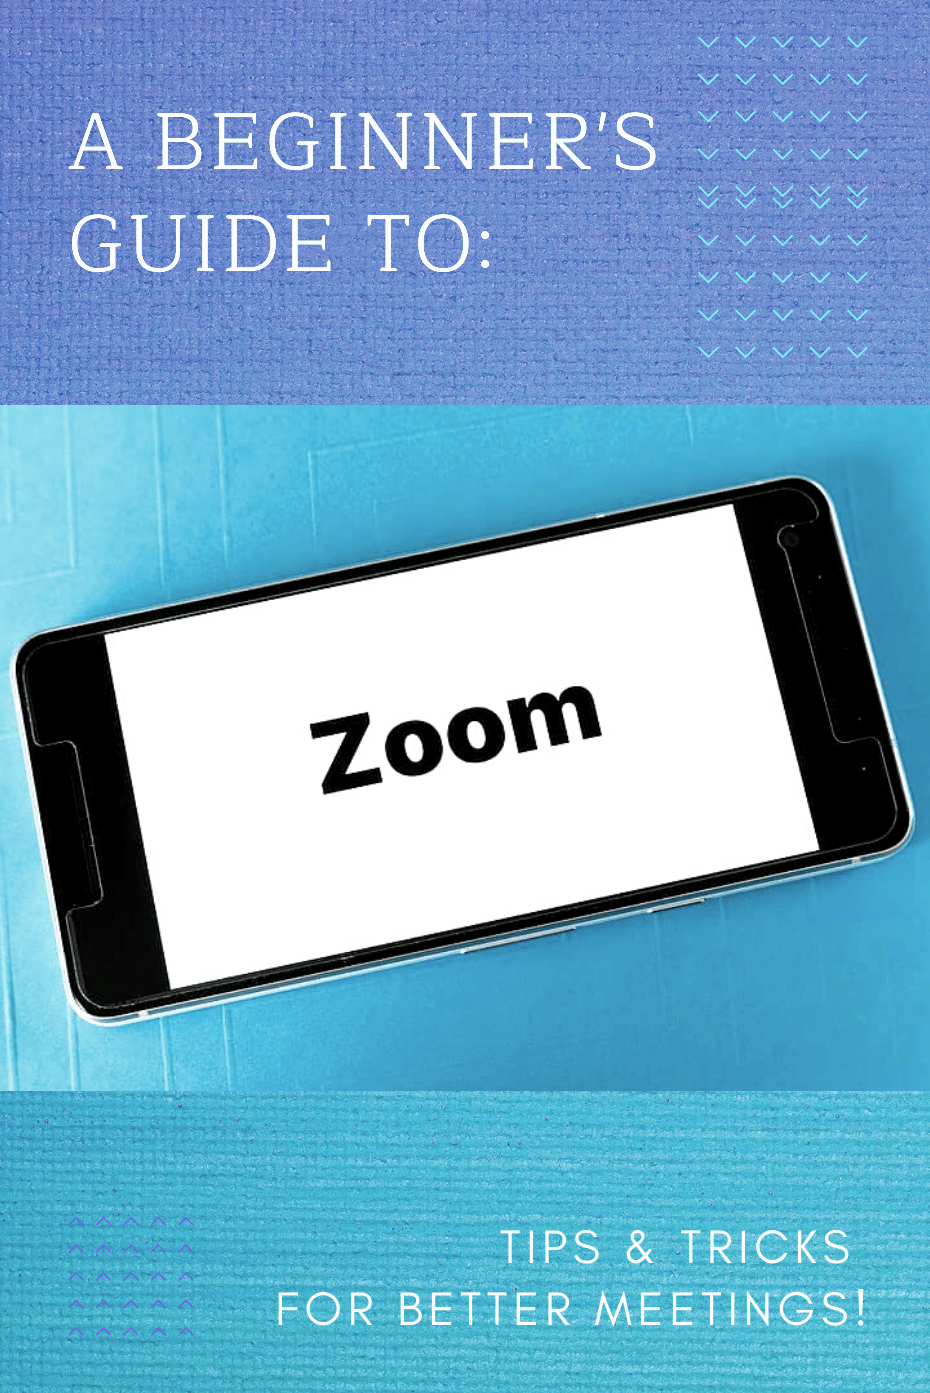 A Beginner's Guide to Zoom